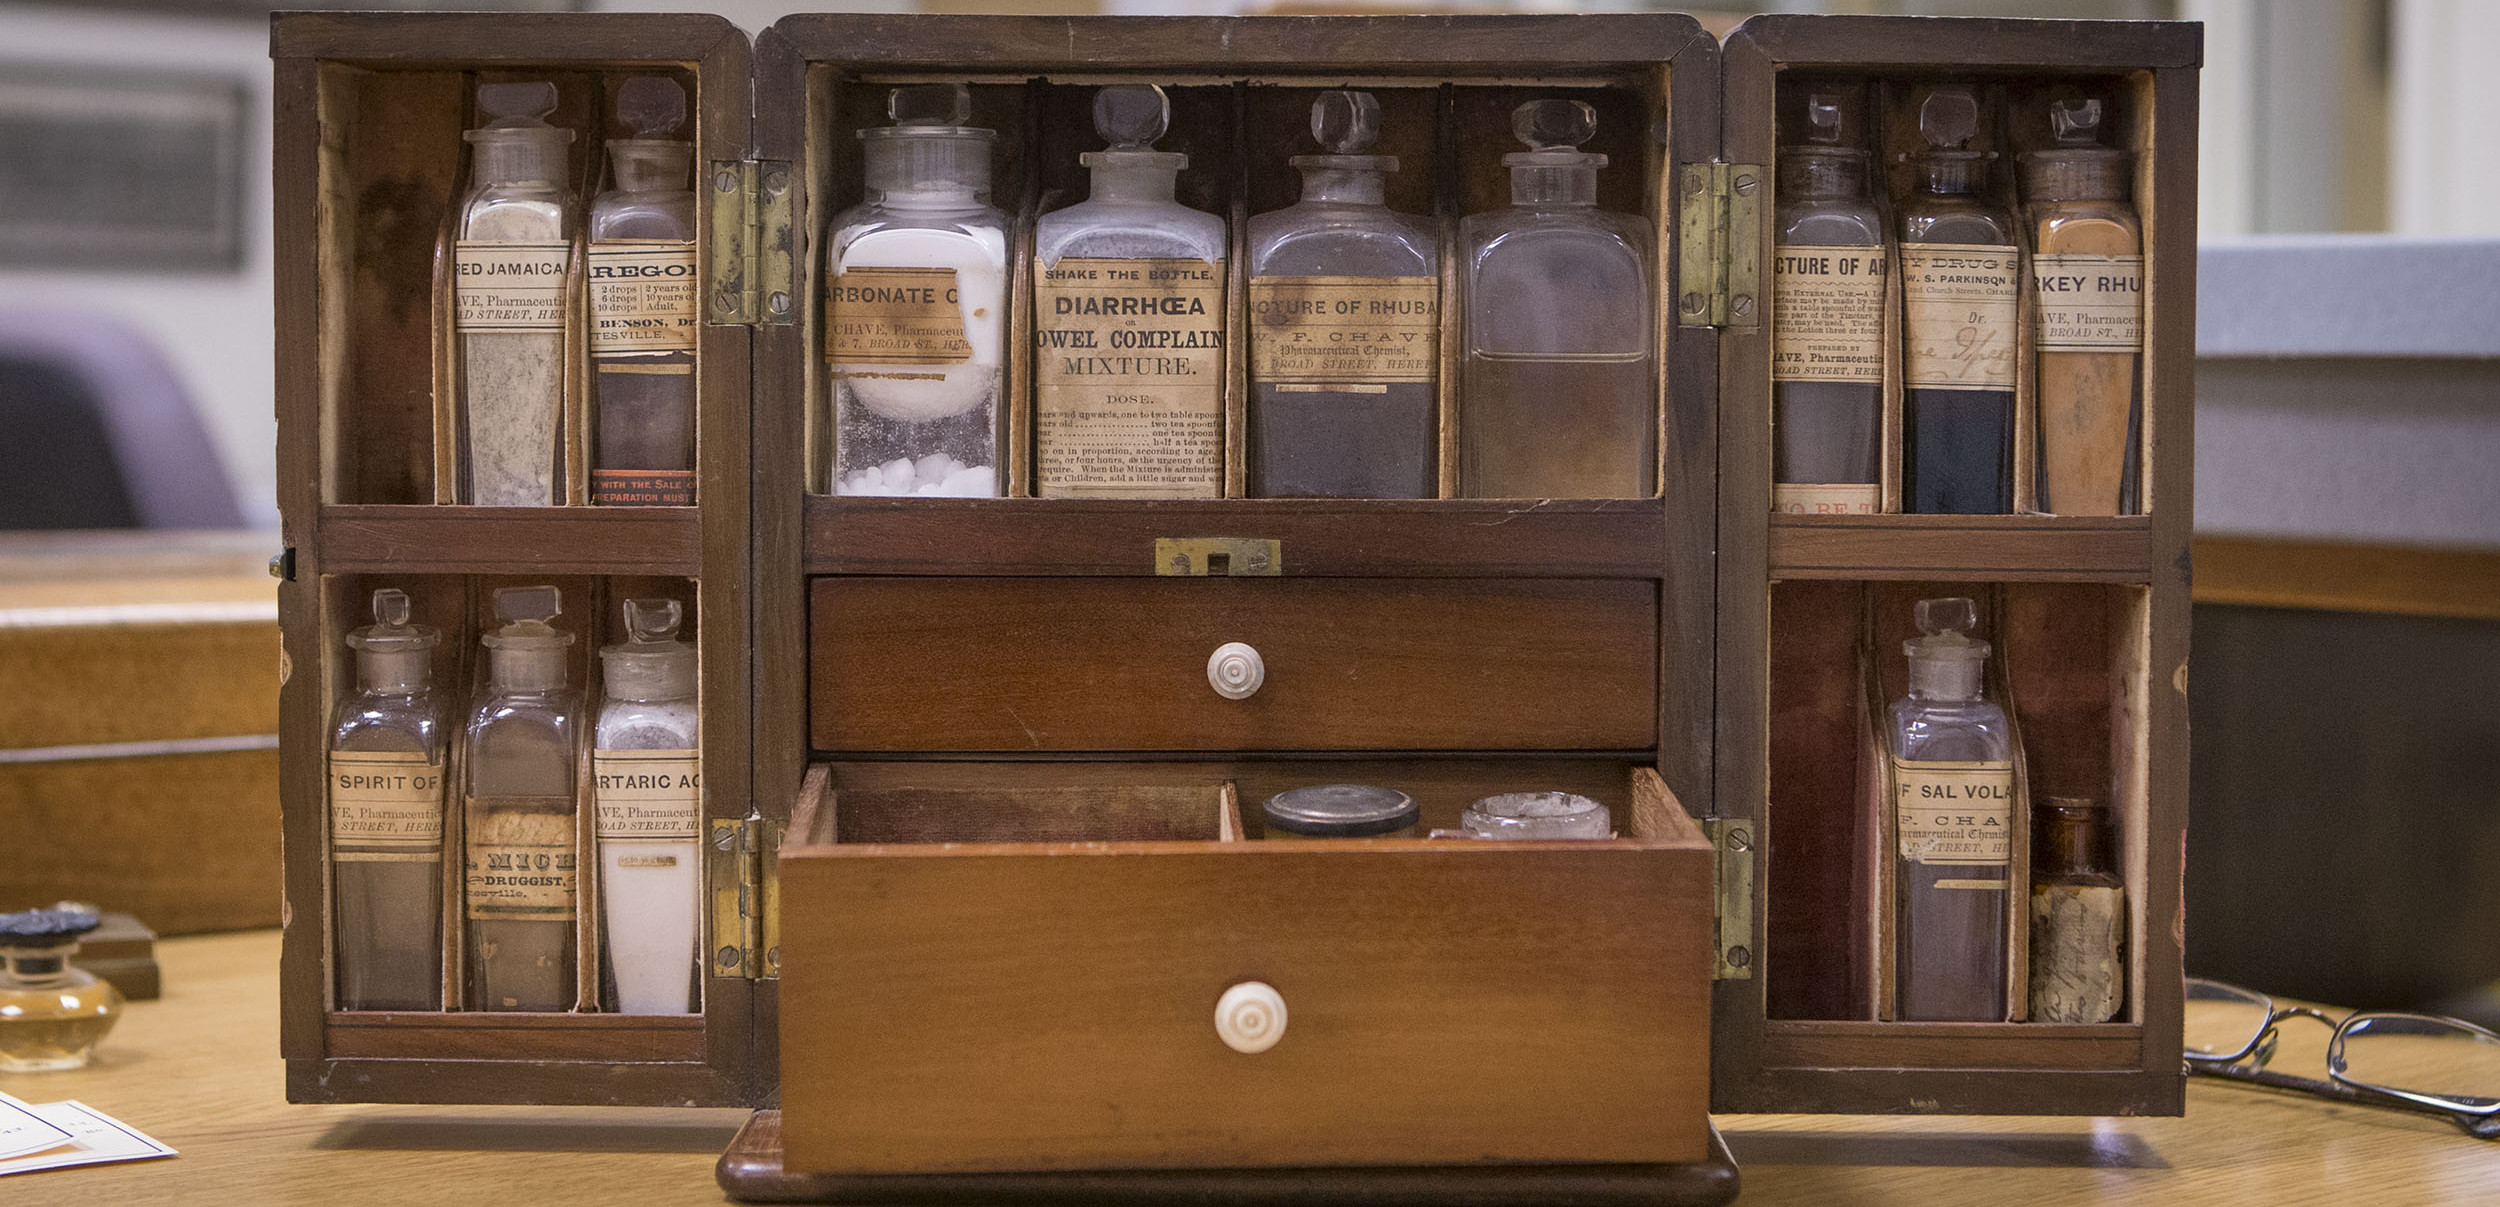 Library Exhibits Medical Curiosities | UVA Today